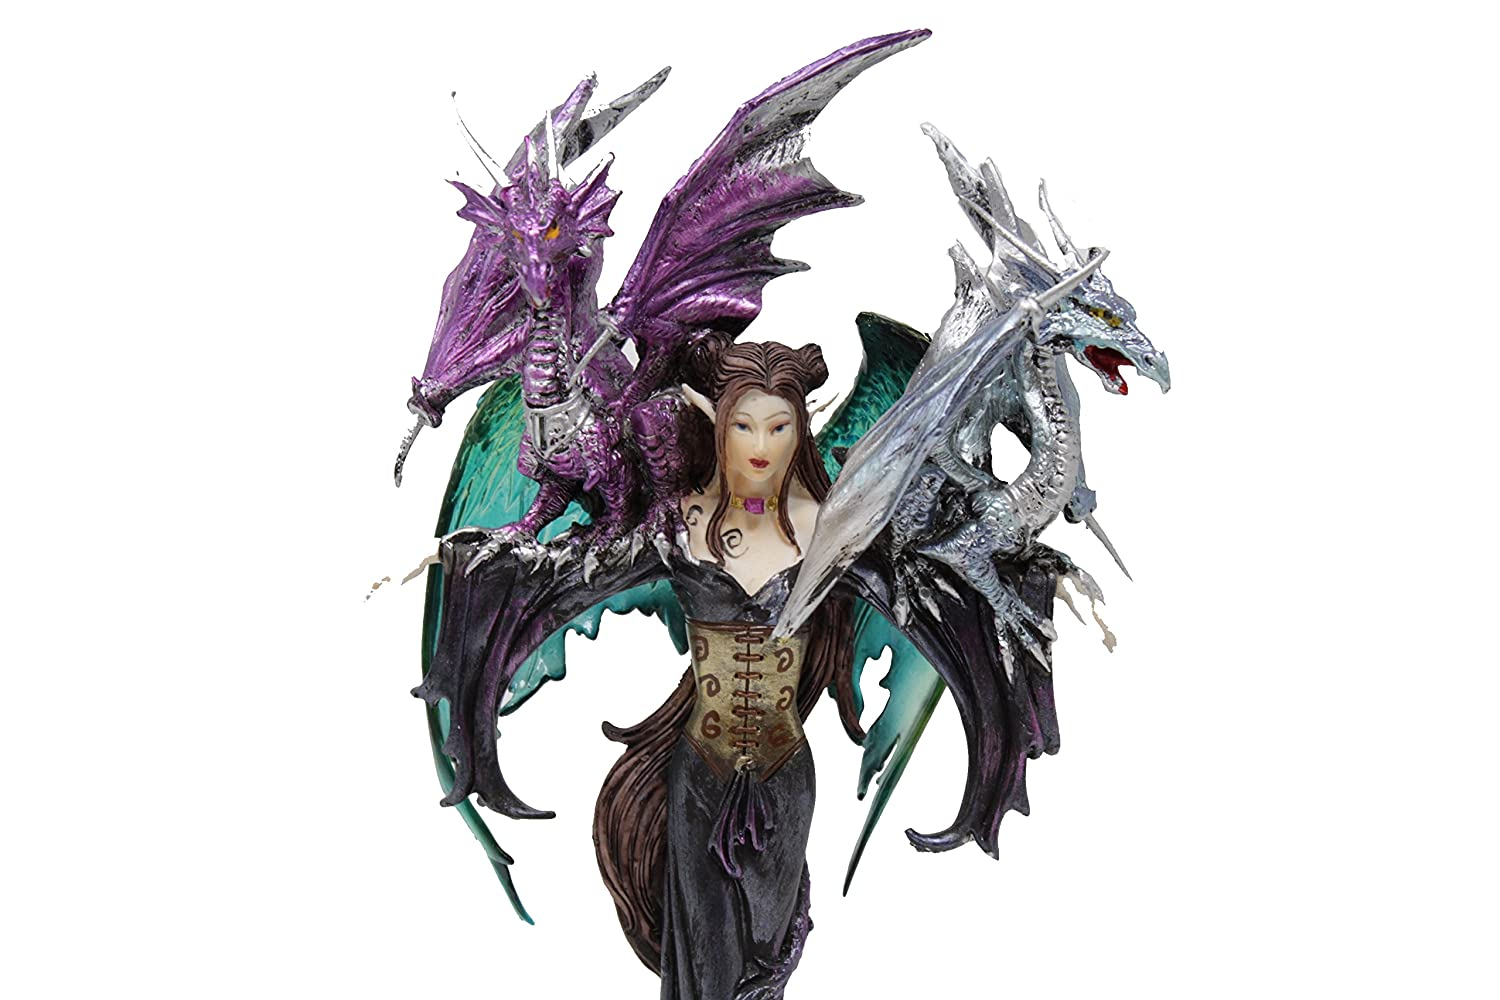 GSC Fairy With Beautiful Blue Wings And Two Dragon Perched Upon Her Arms Collectible Figurine 10 Inches High 91276